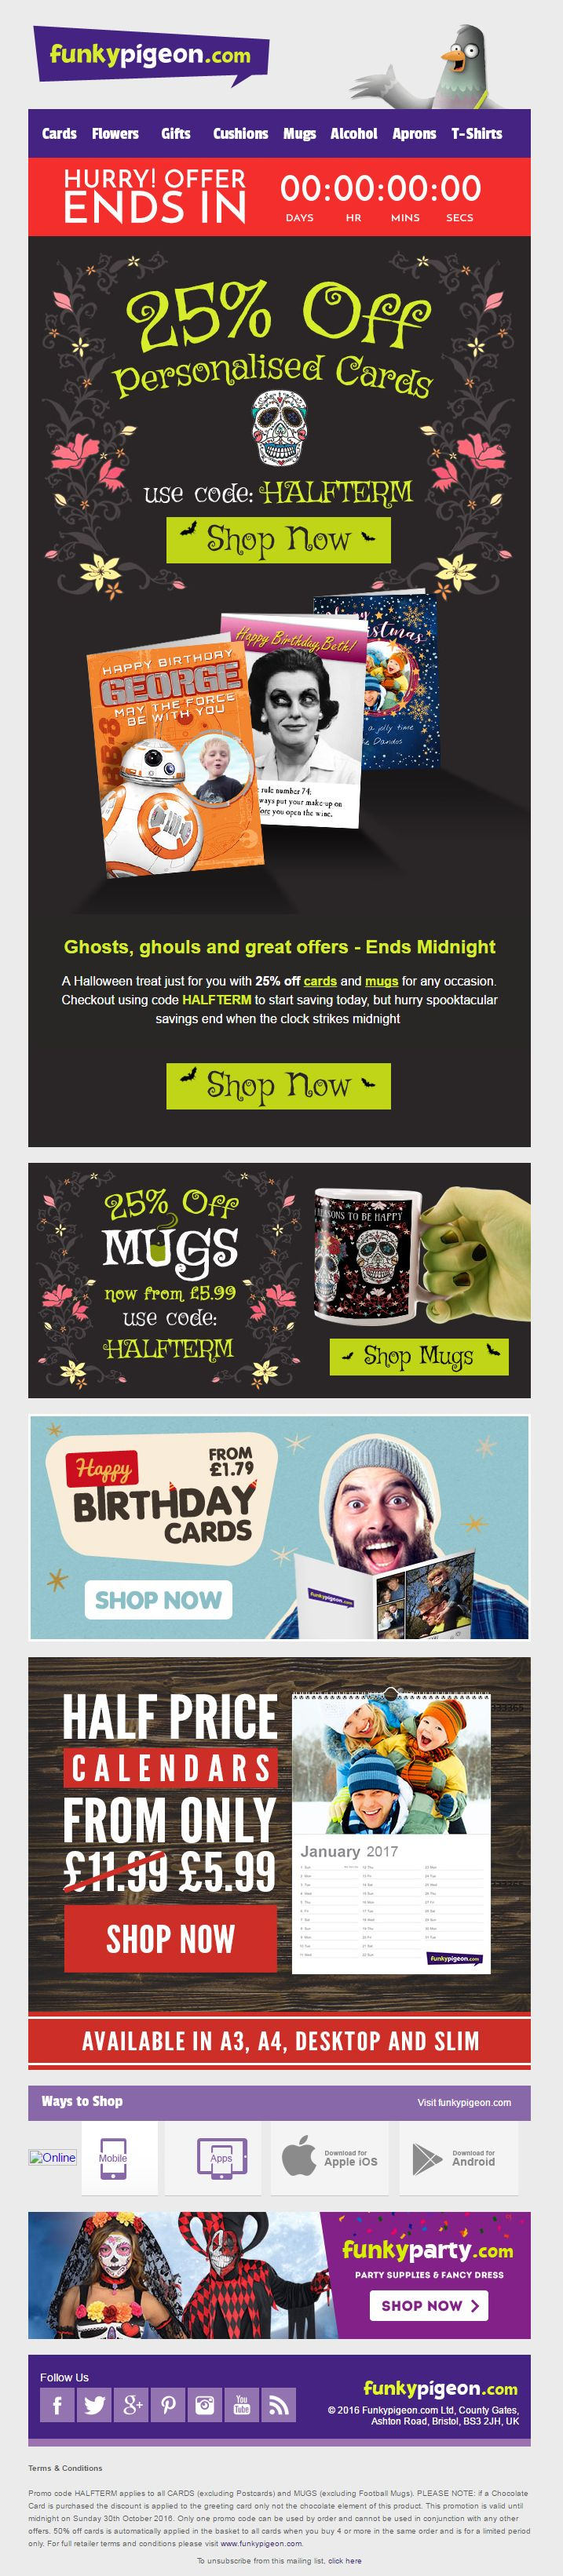 Halloween offer email from funkypigeon com including coupon discount code and countdown timer emailmarketing